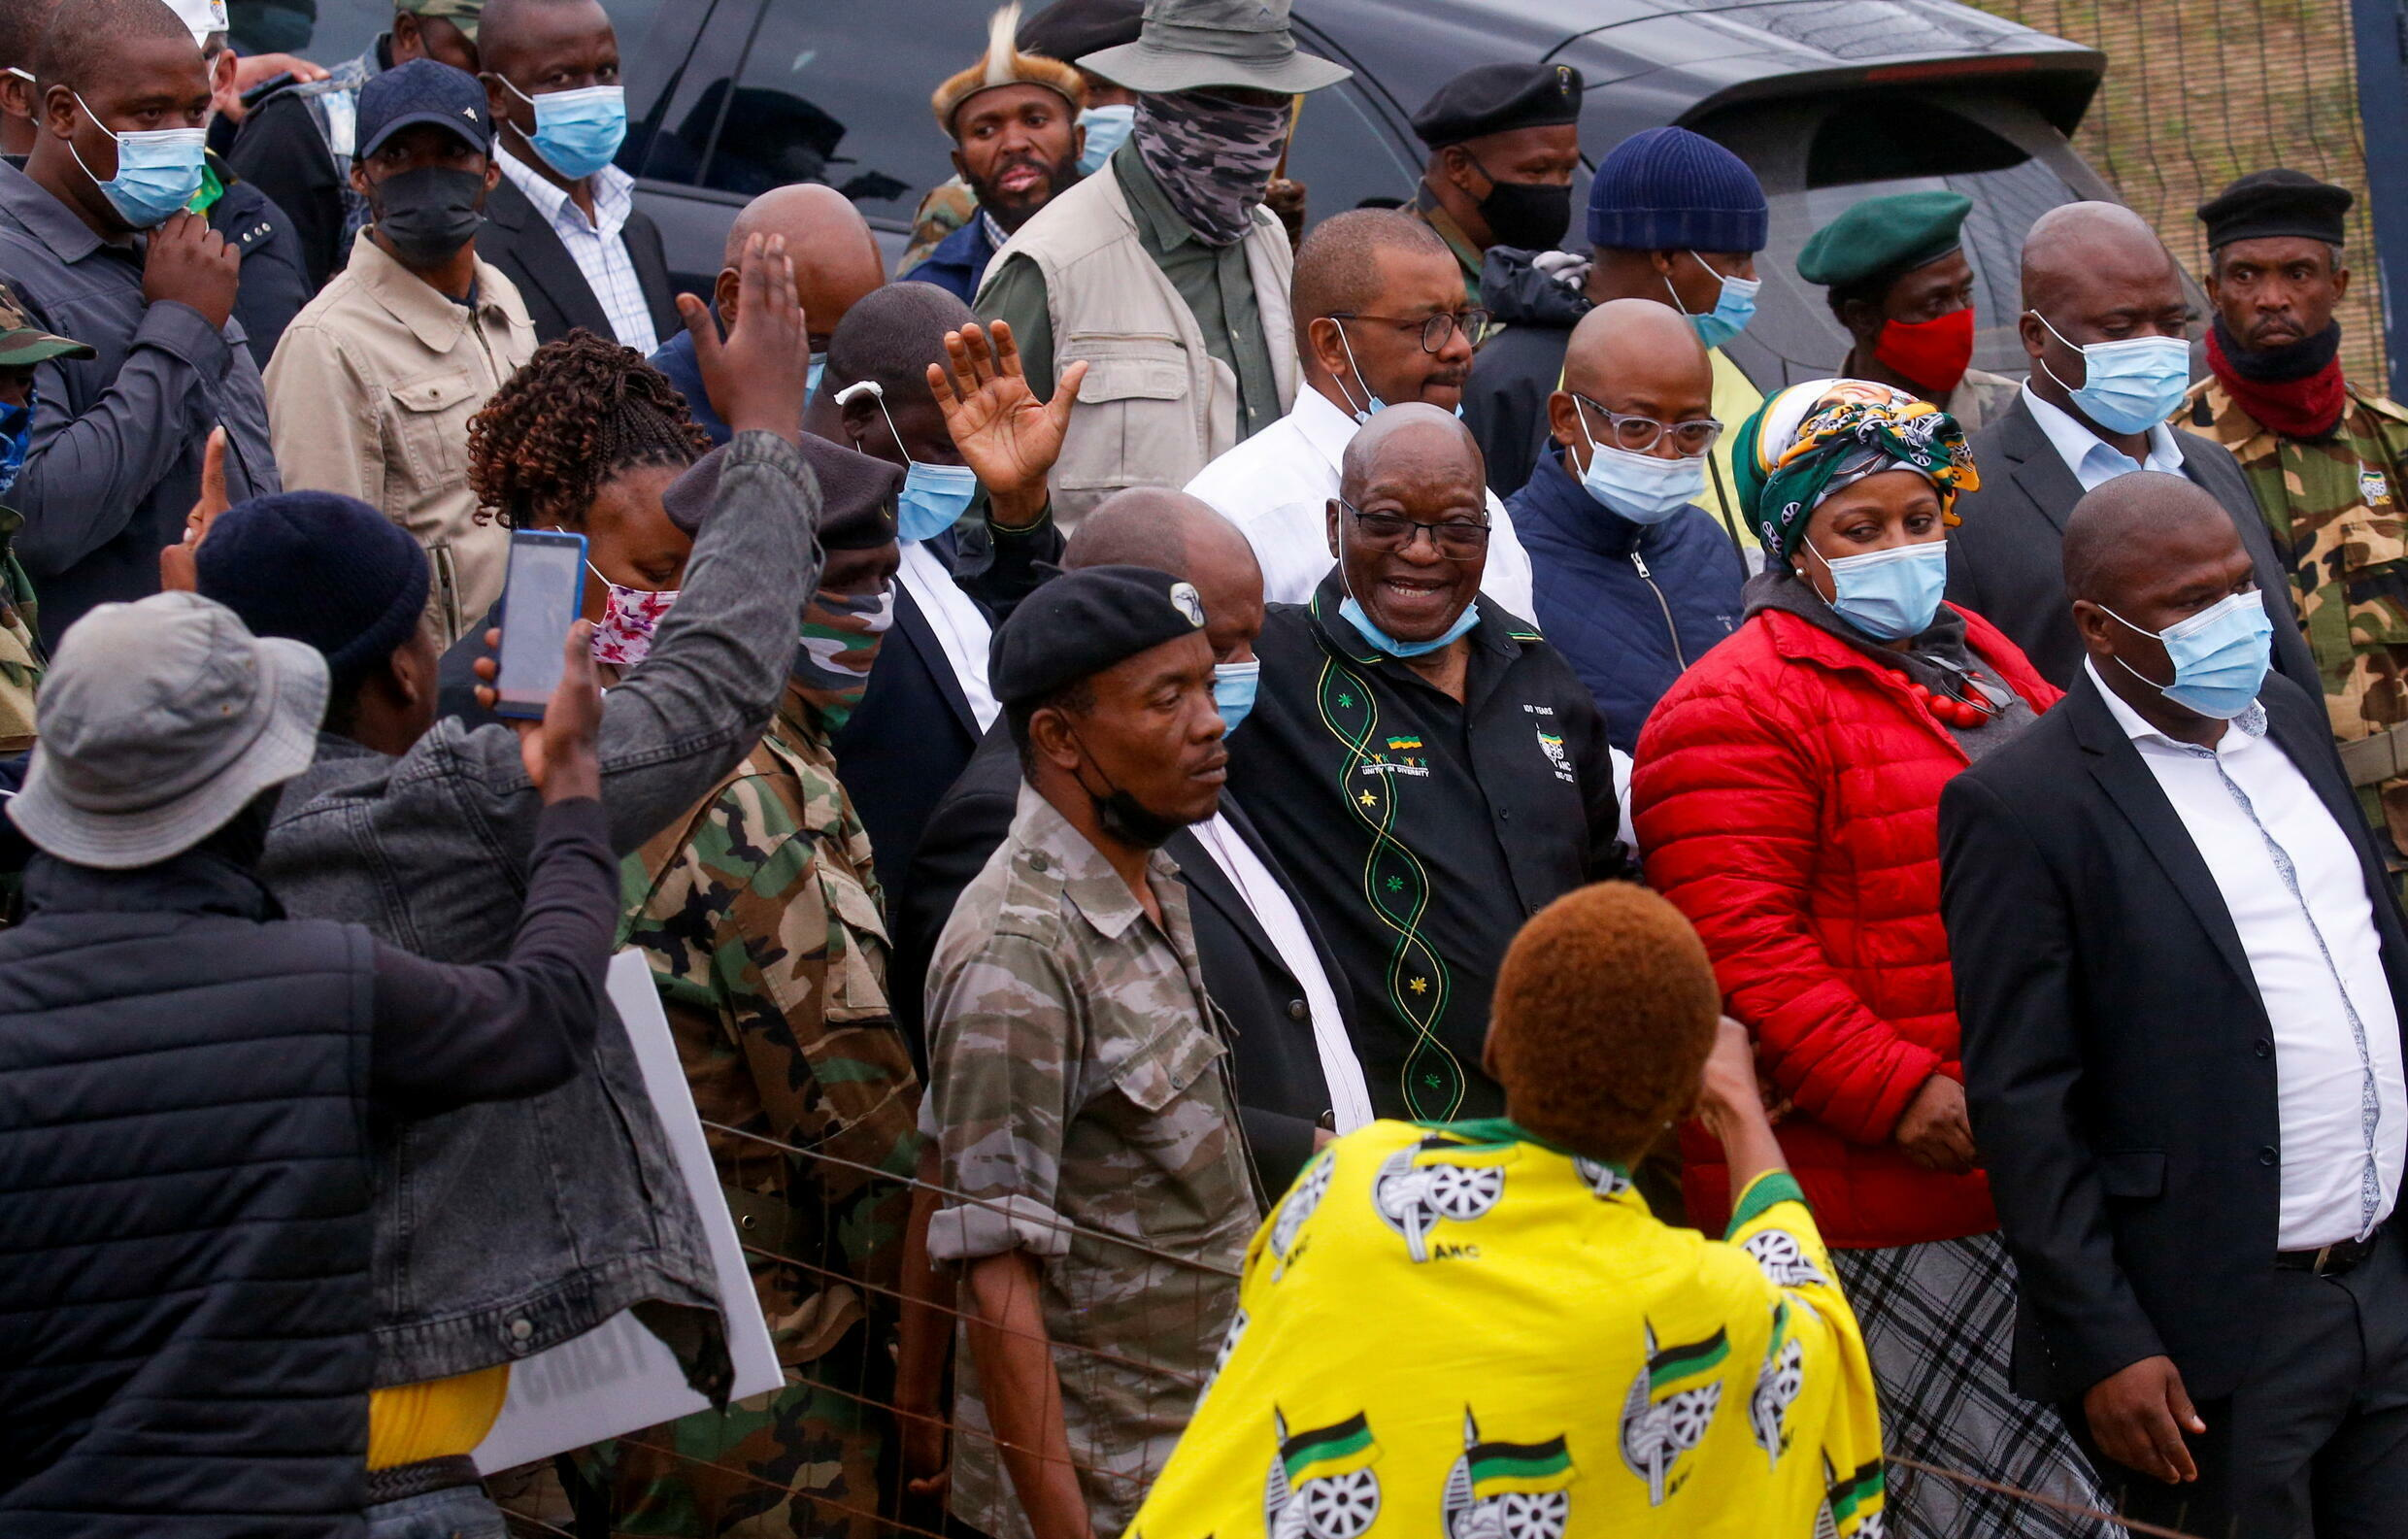 Hundreds of people have gathered outside the home in Nkandla of the former South African President Jacob Zuma to show their support in his fight against a jail sentence.